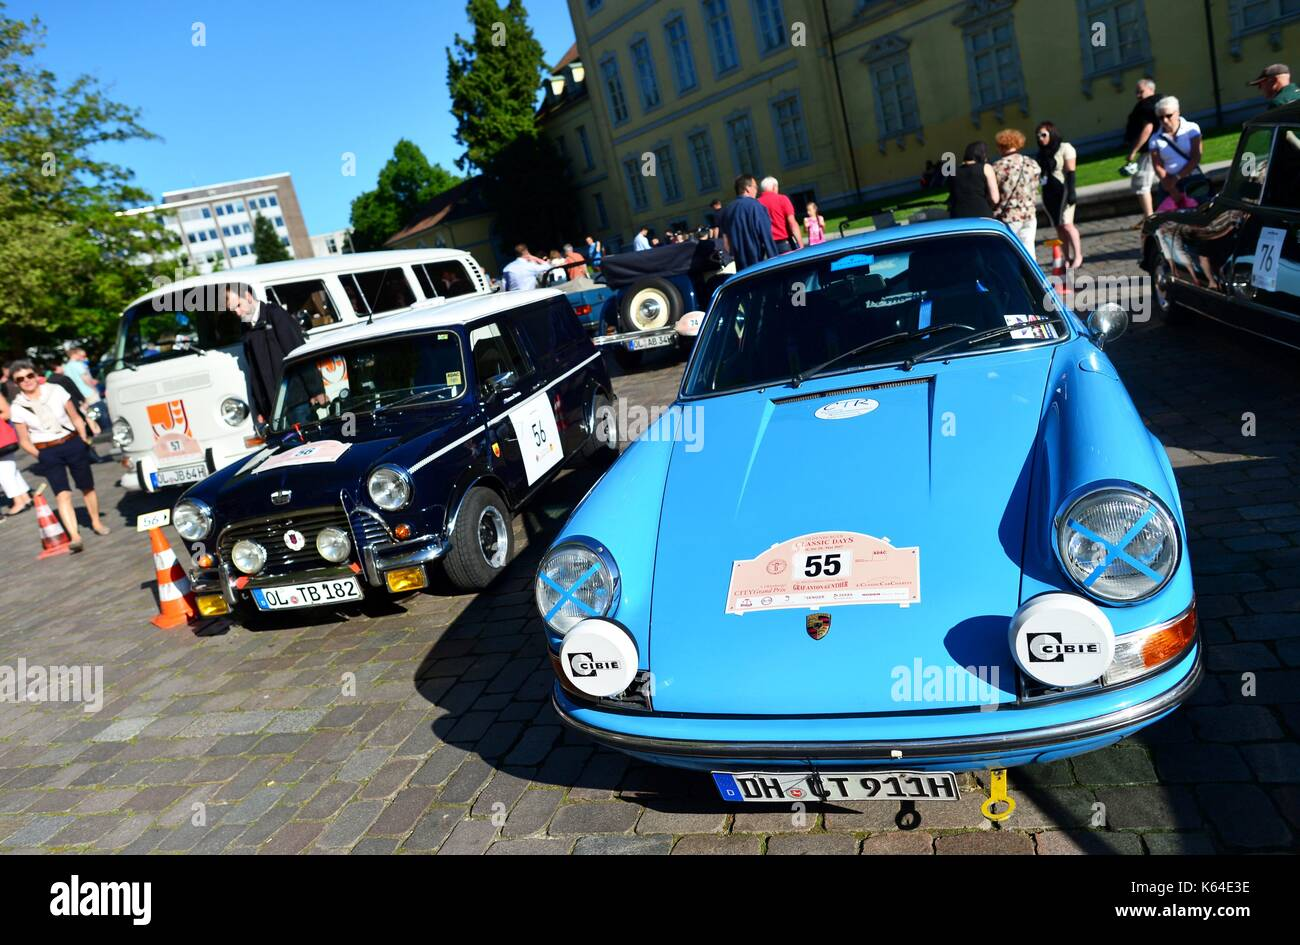 Oldtimers of the type Porsche 911 (l) and British Leyland Mini Van Mark II (r) at the City Grand Prix in Oldenburg Stock Photo